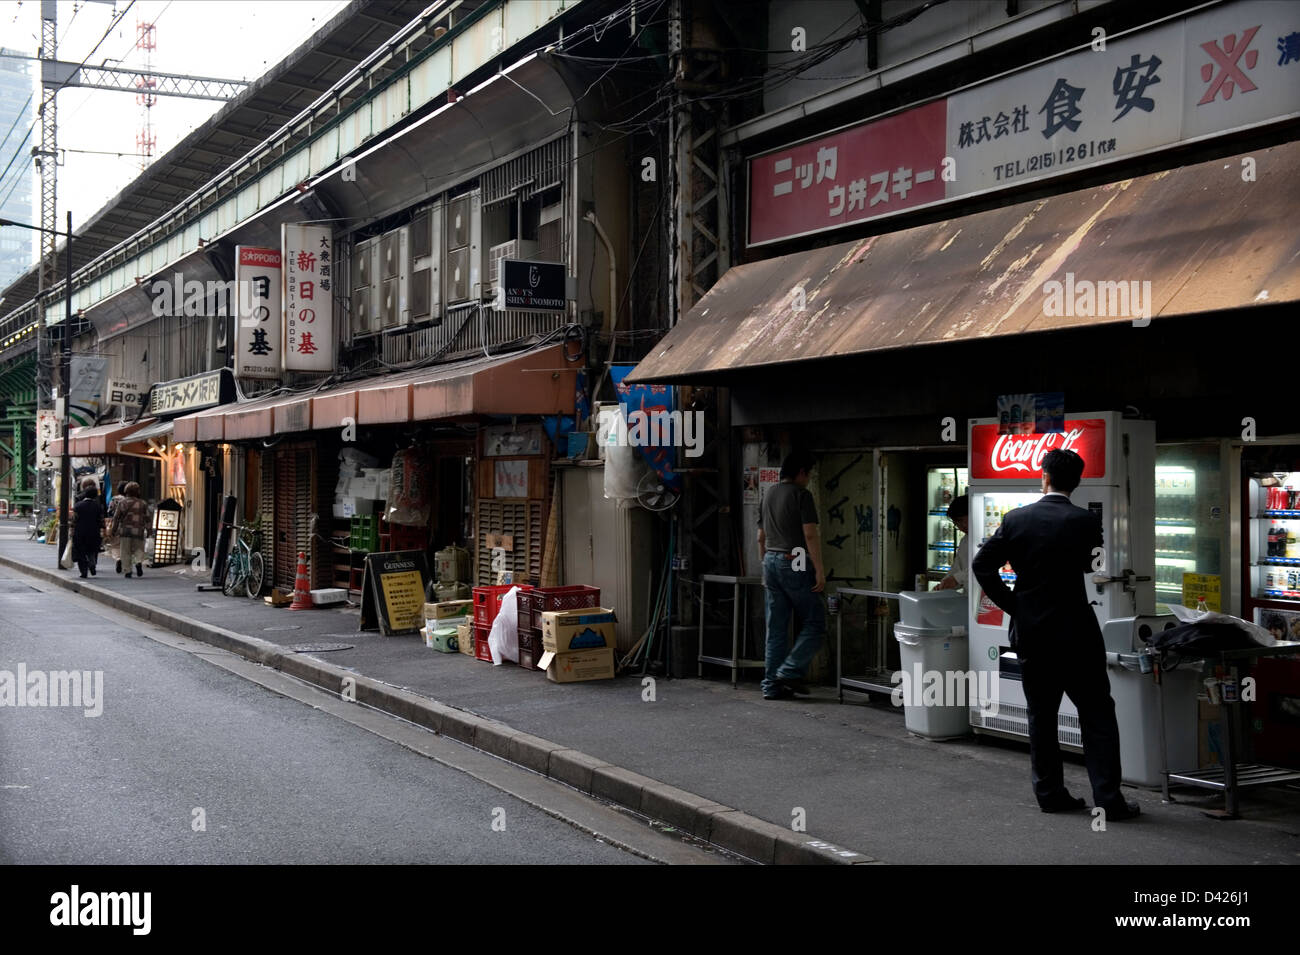 Shops and restaurants share space side-by-side under the elevated railway tracks in Tokyo's Yurakucho district. - Stock Image